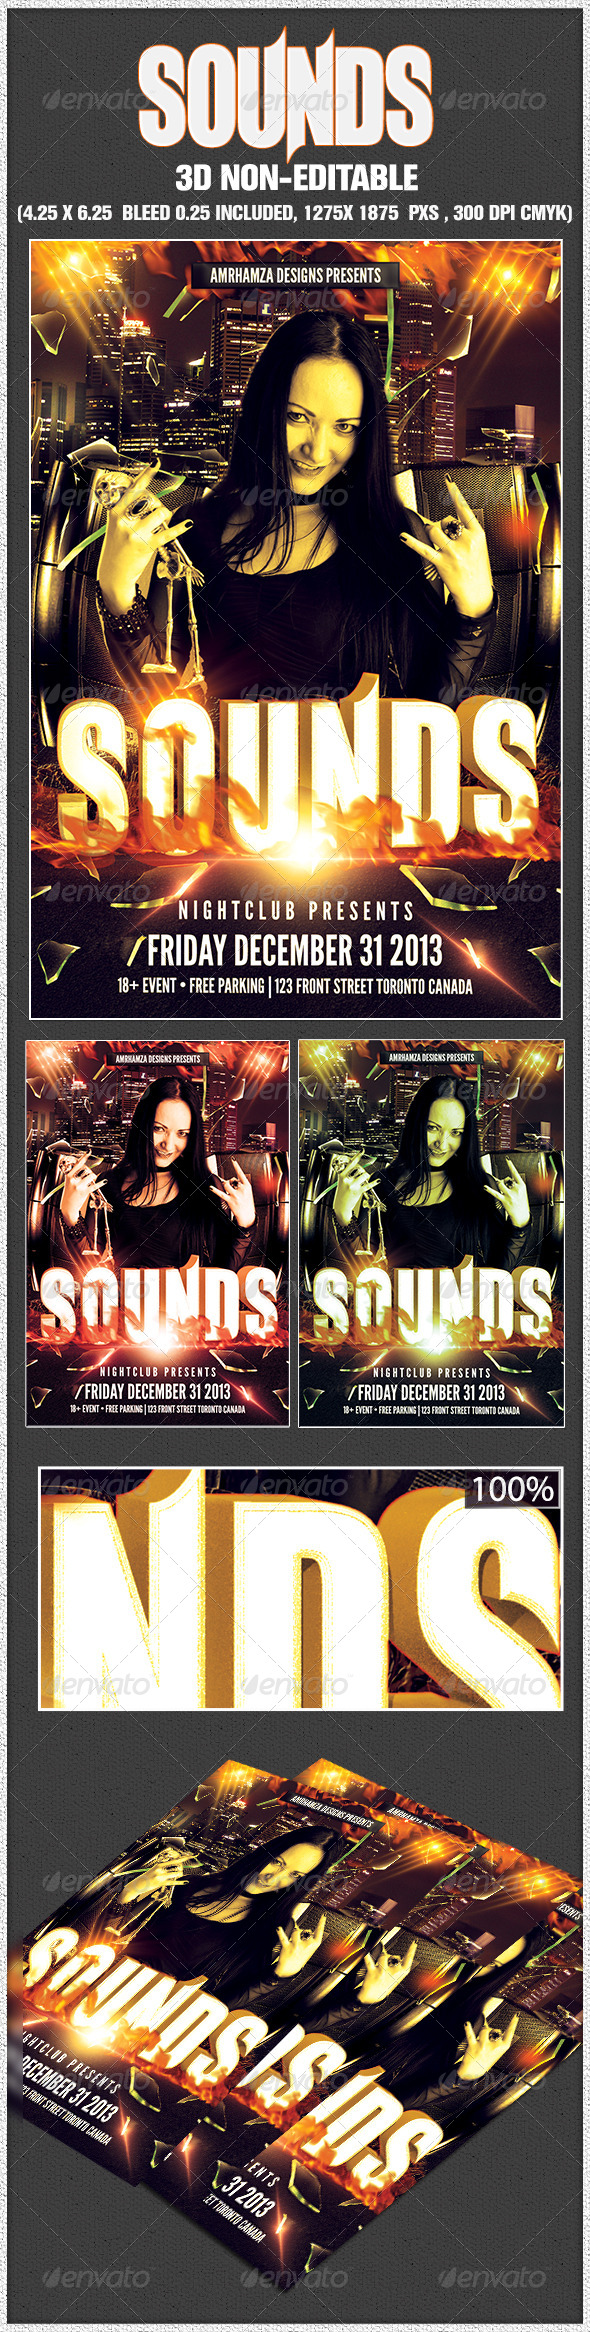 Sounds Flyer Template - Clubs & Parties Events